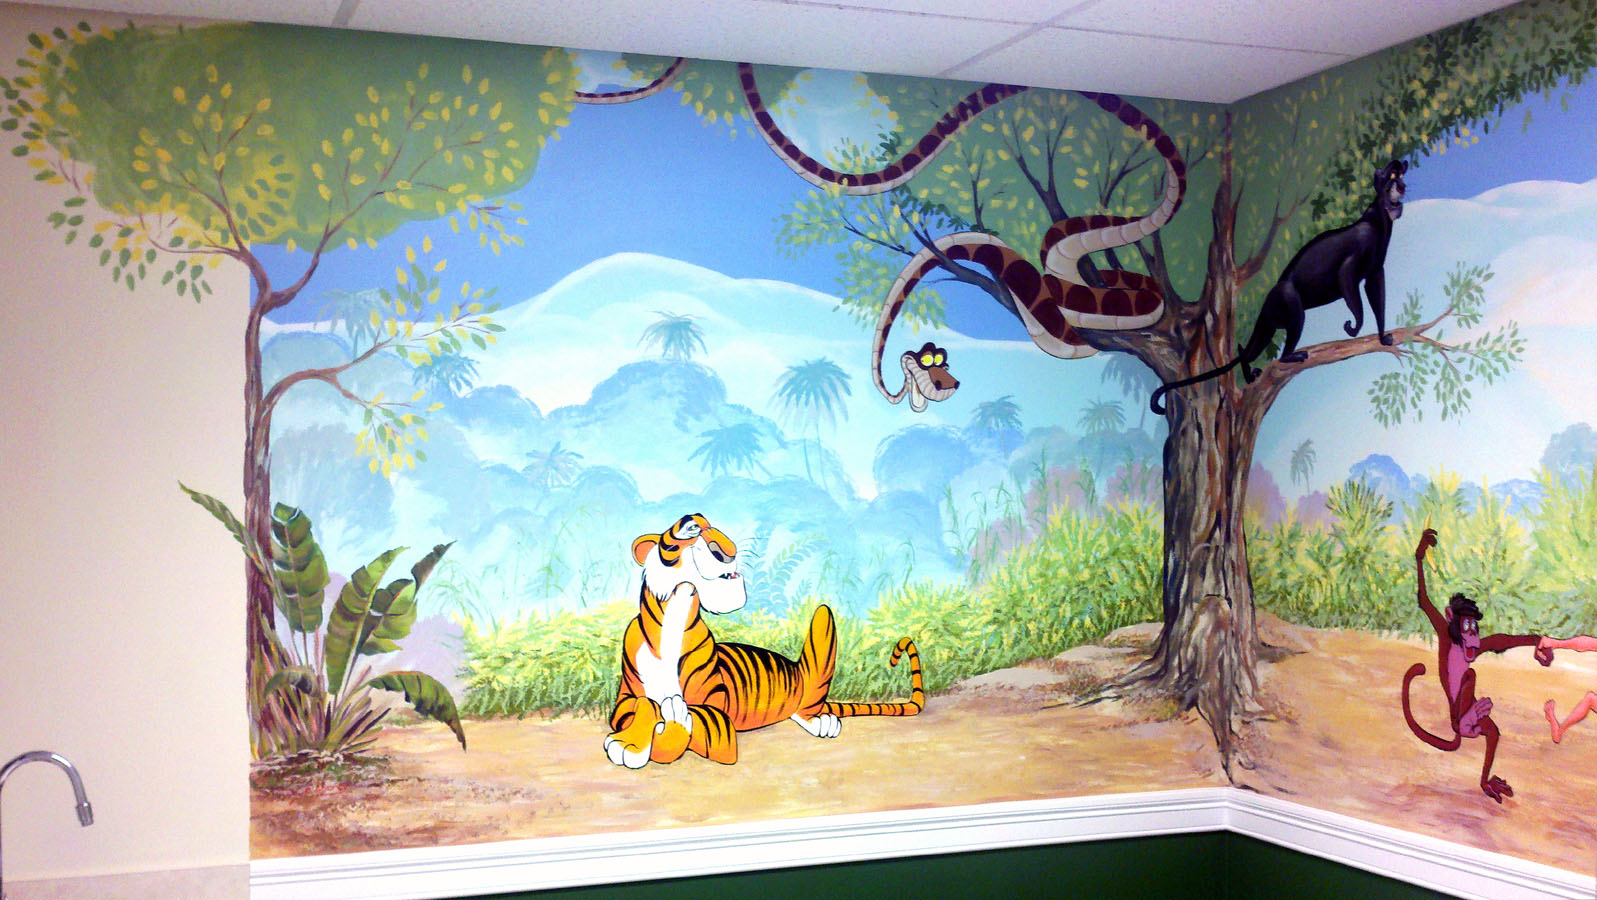 Wall Mural Childrens Bedroom Disney S Cartoons Are The Most Favorite Theme For Kids And